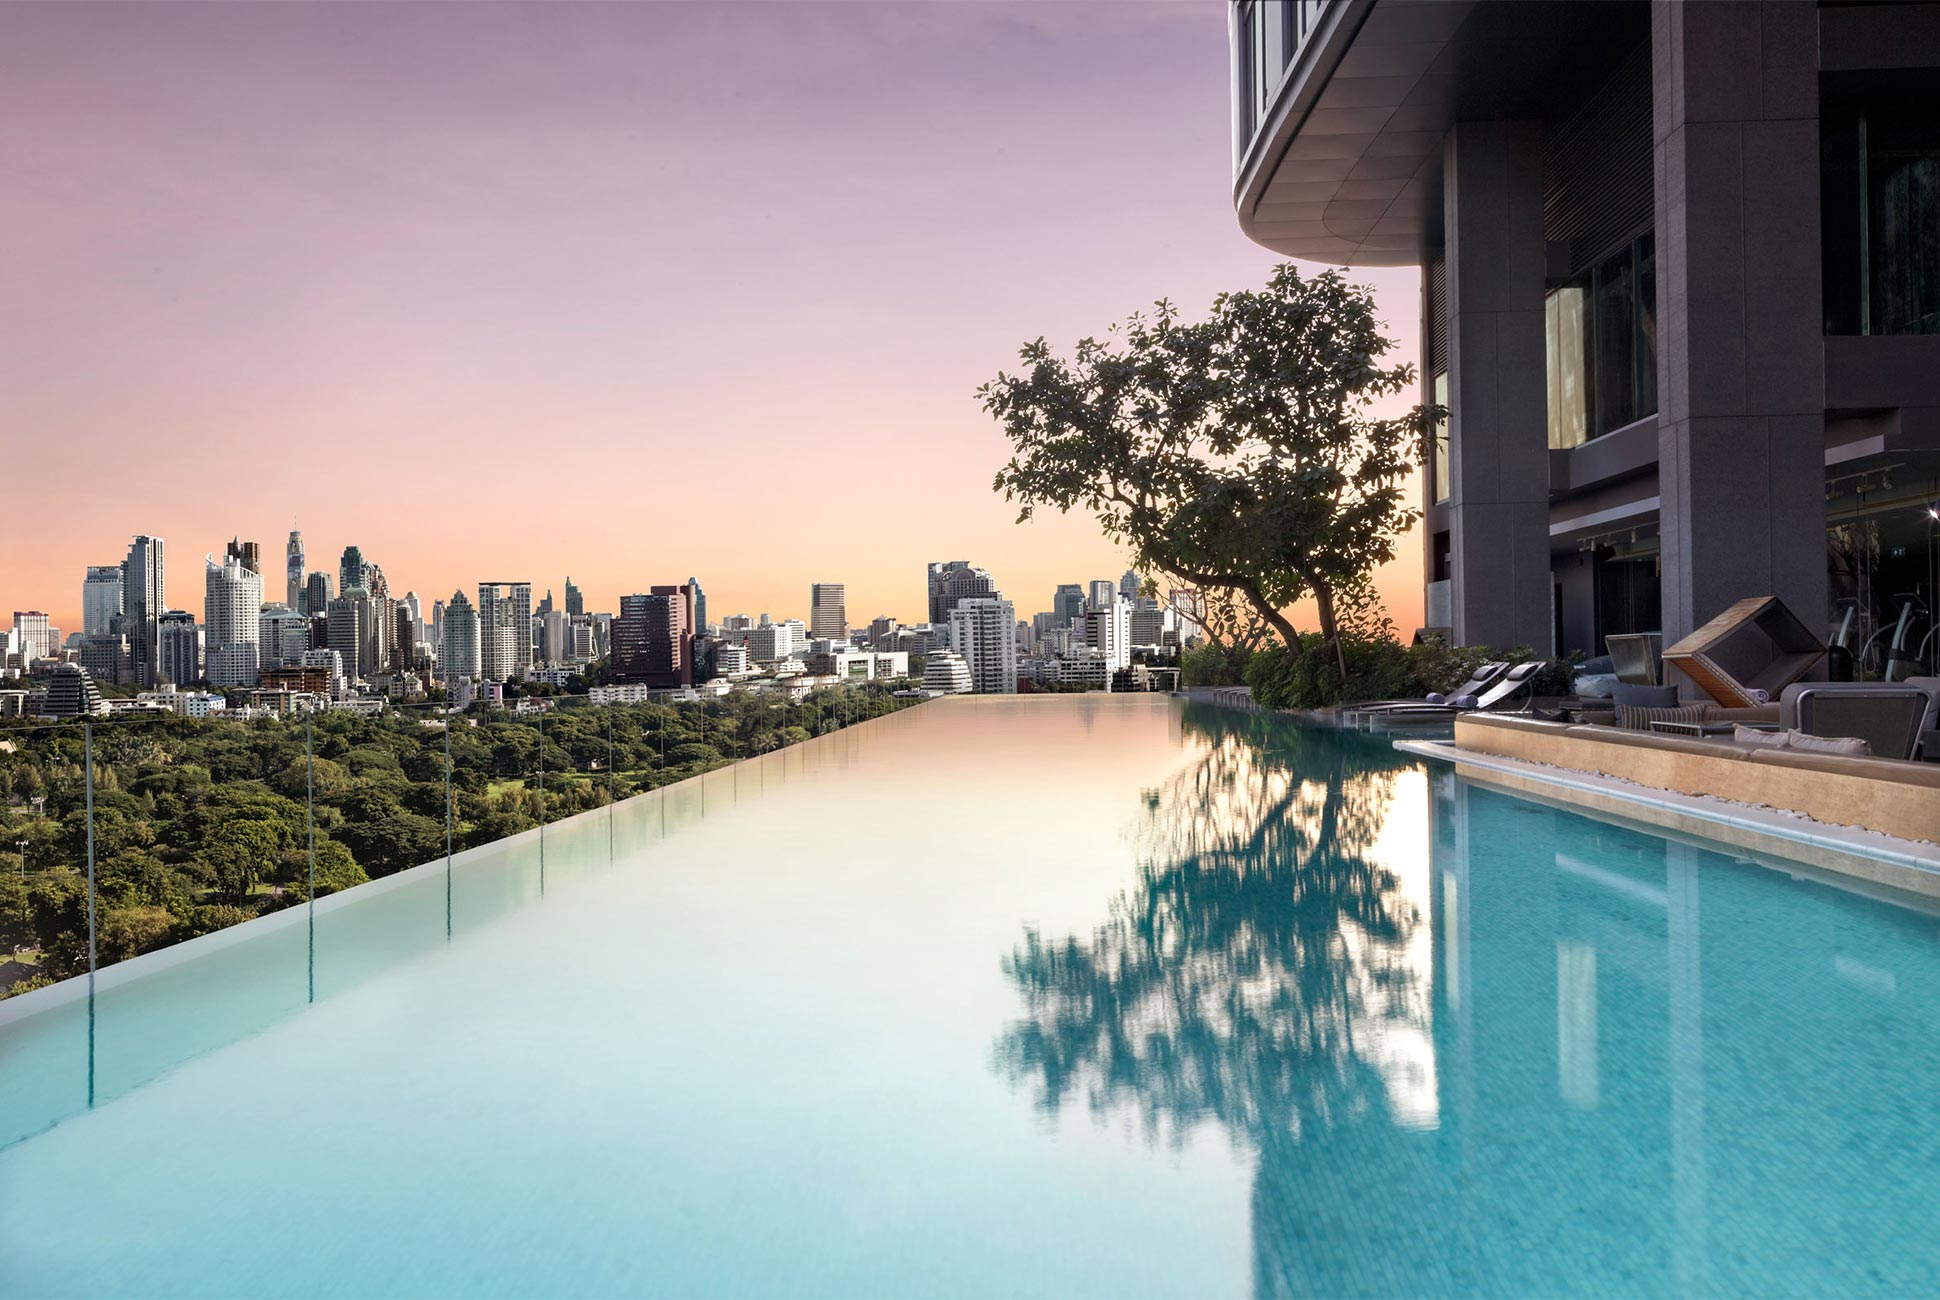 The skyline-fringed party pool at SO Sofitel, Bangkok